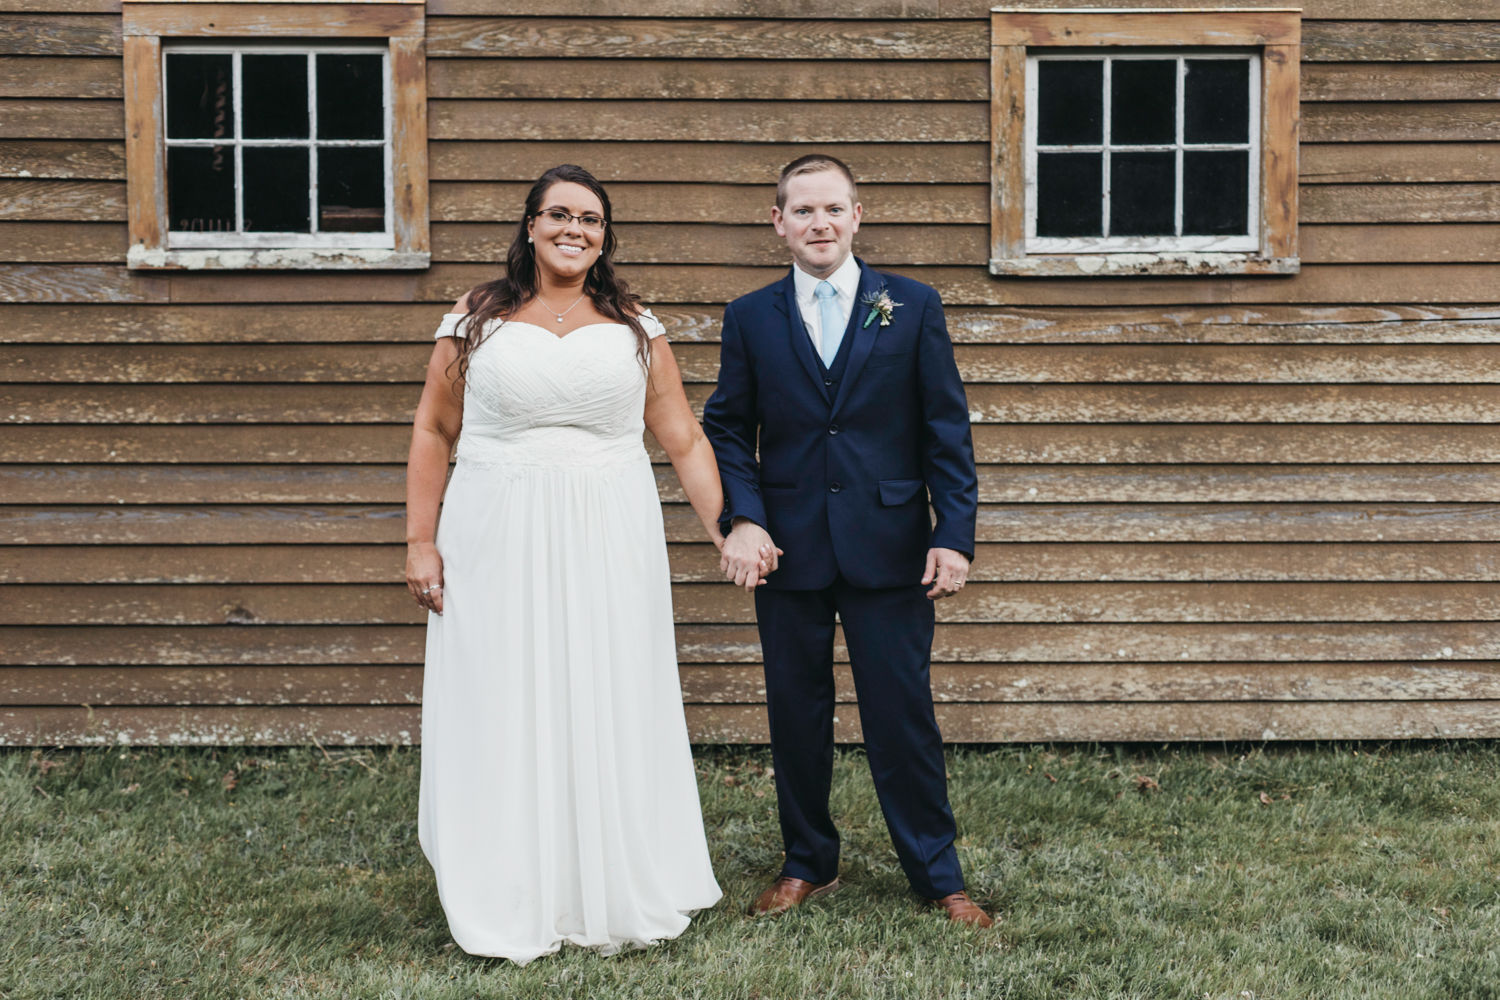 Jill & Gabe Plymouth Wedding Photography-109.jpg